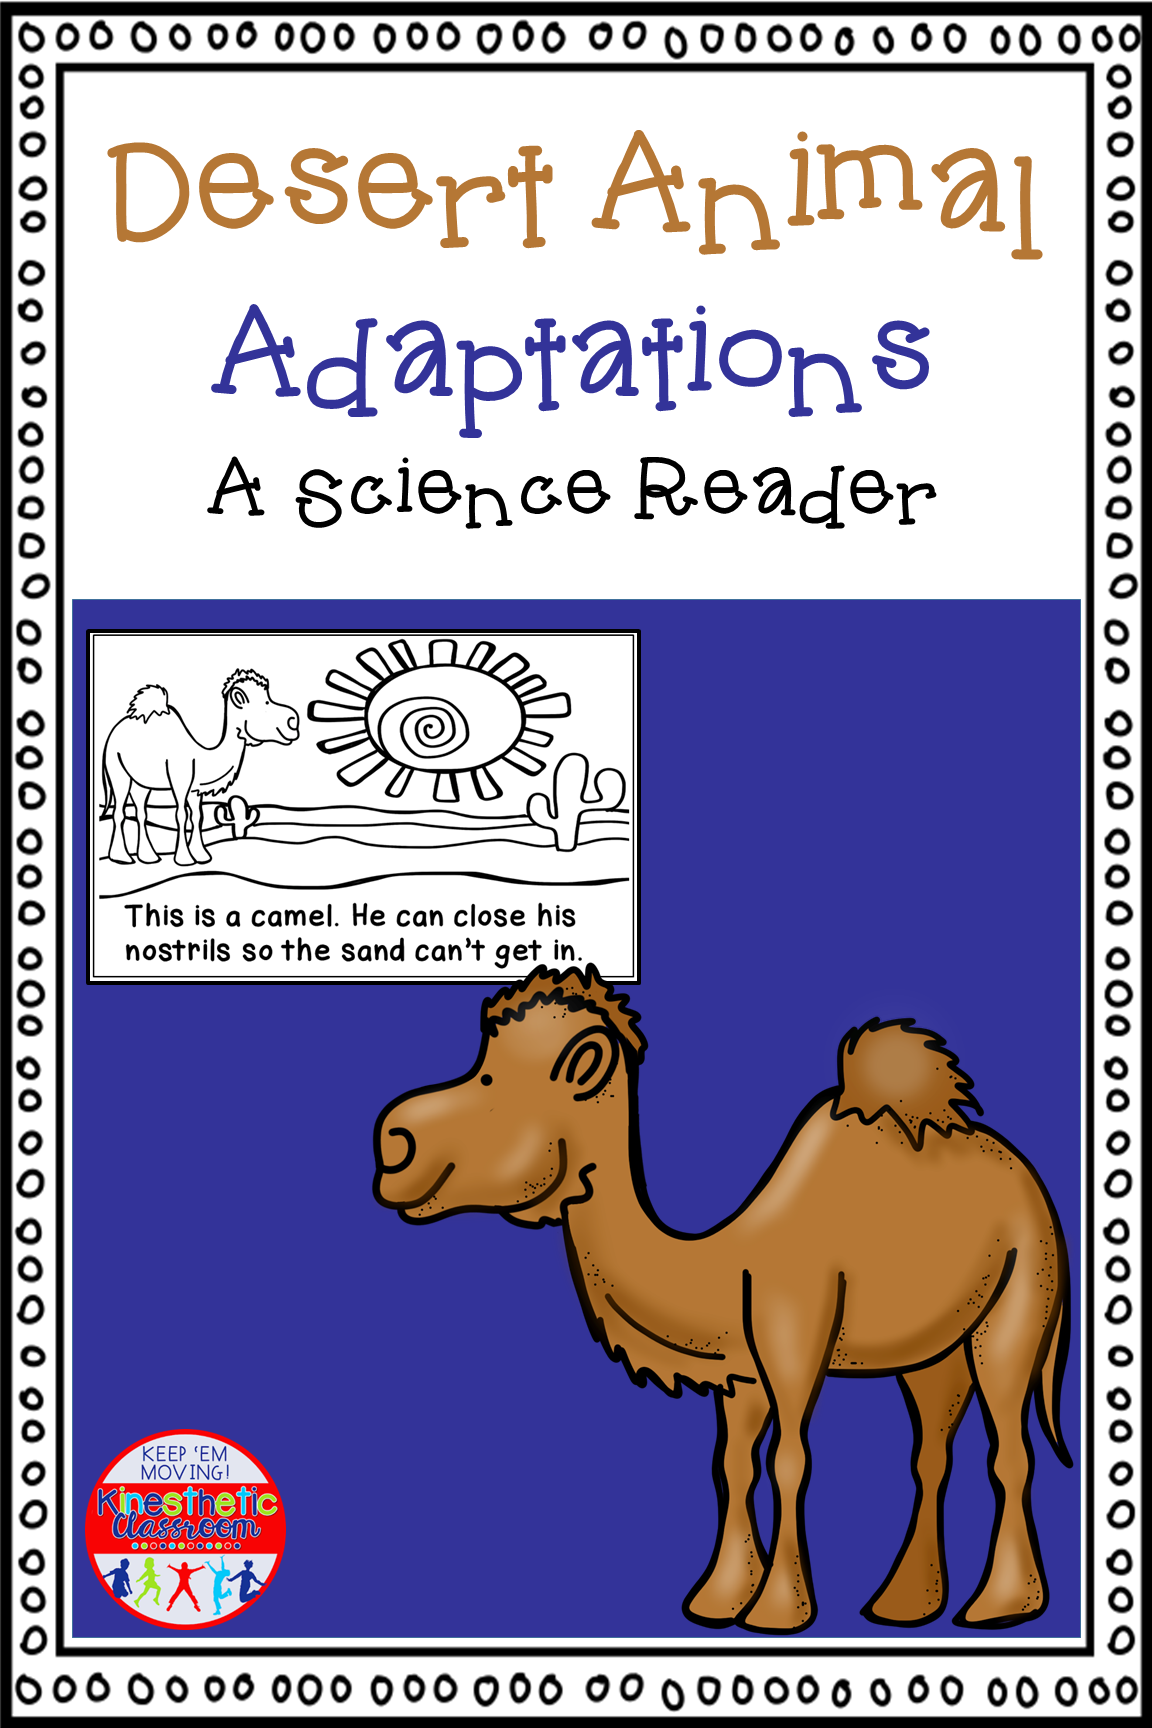 Desert Animal Adaptations Science Reader